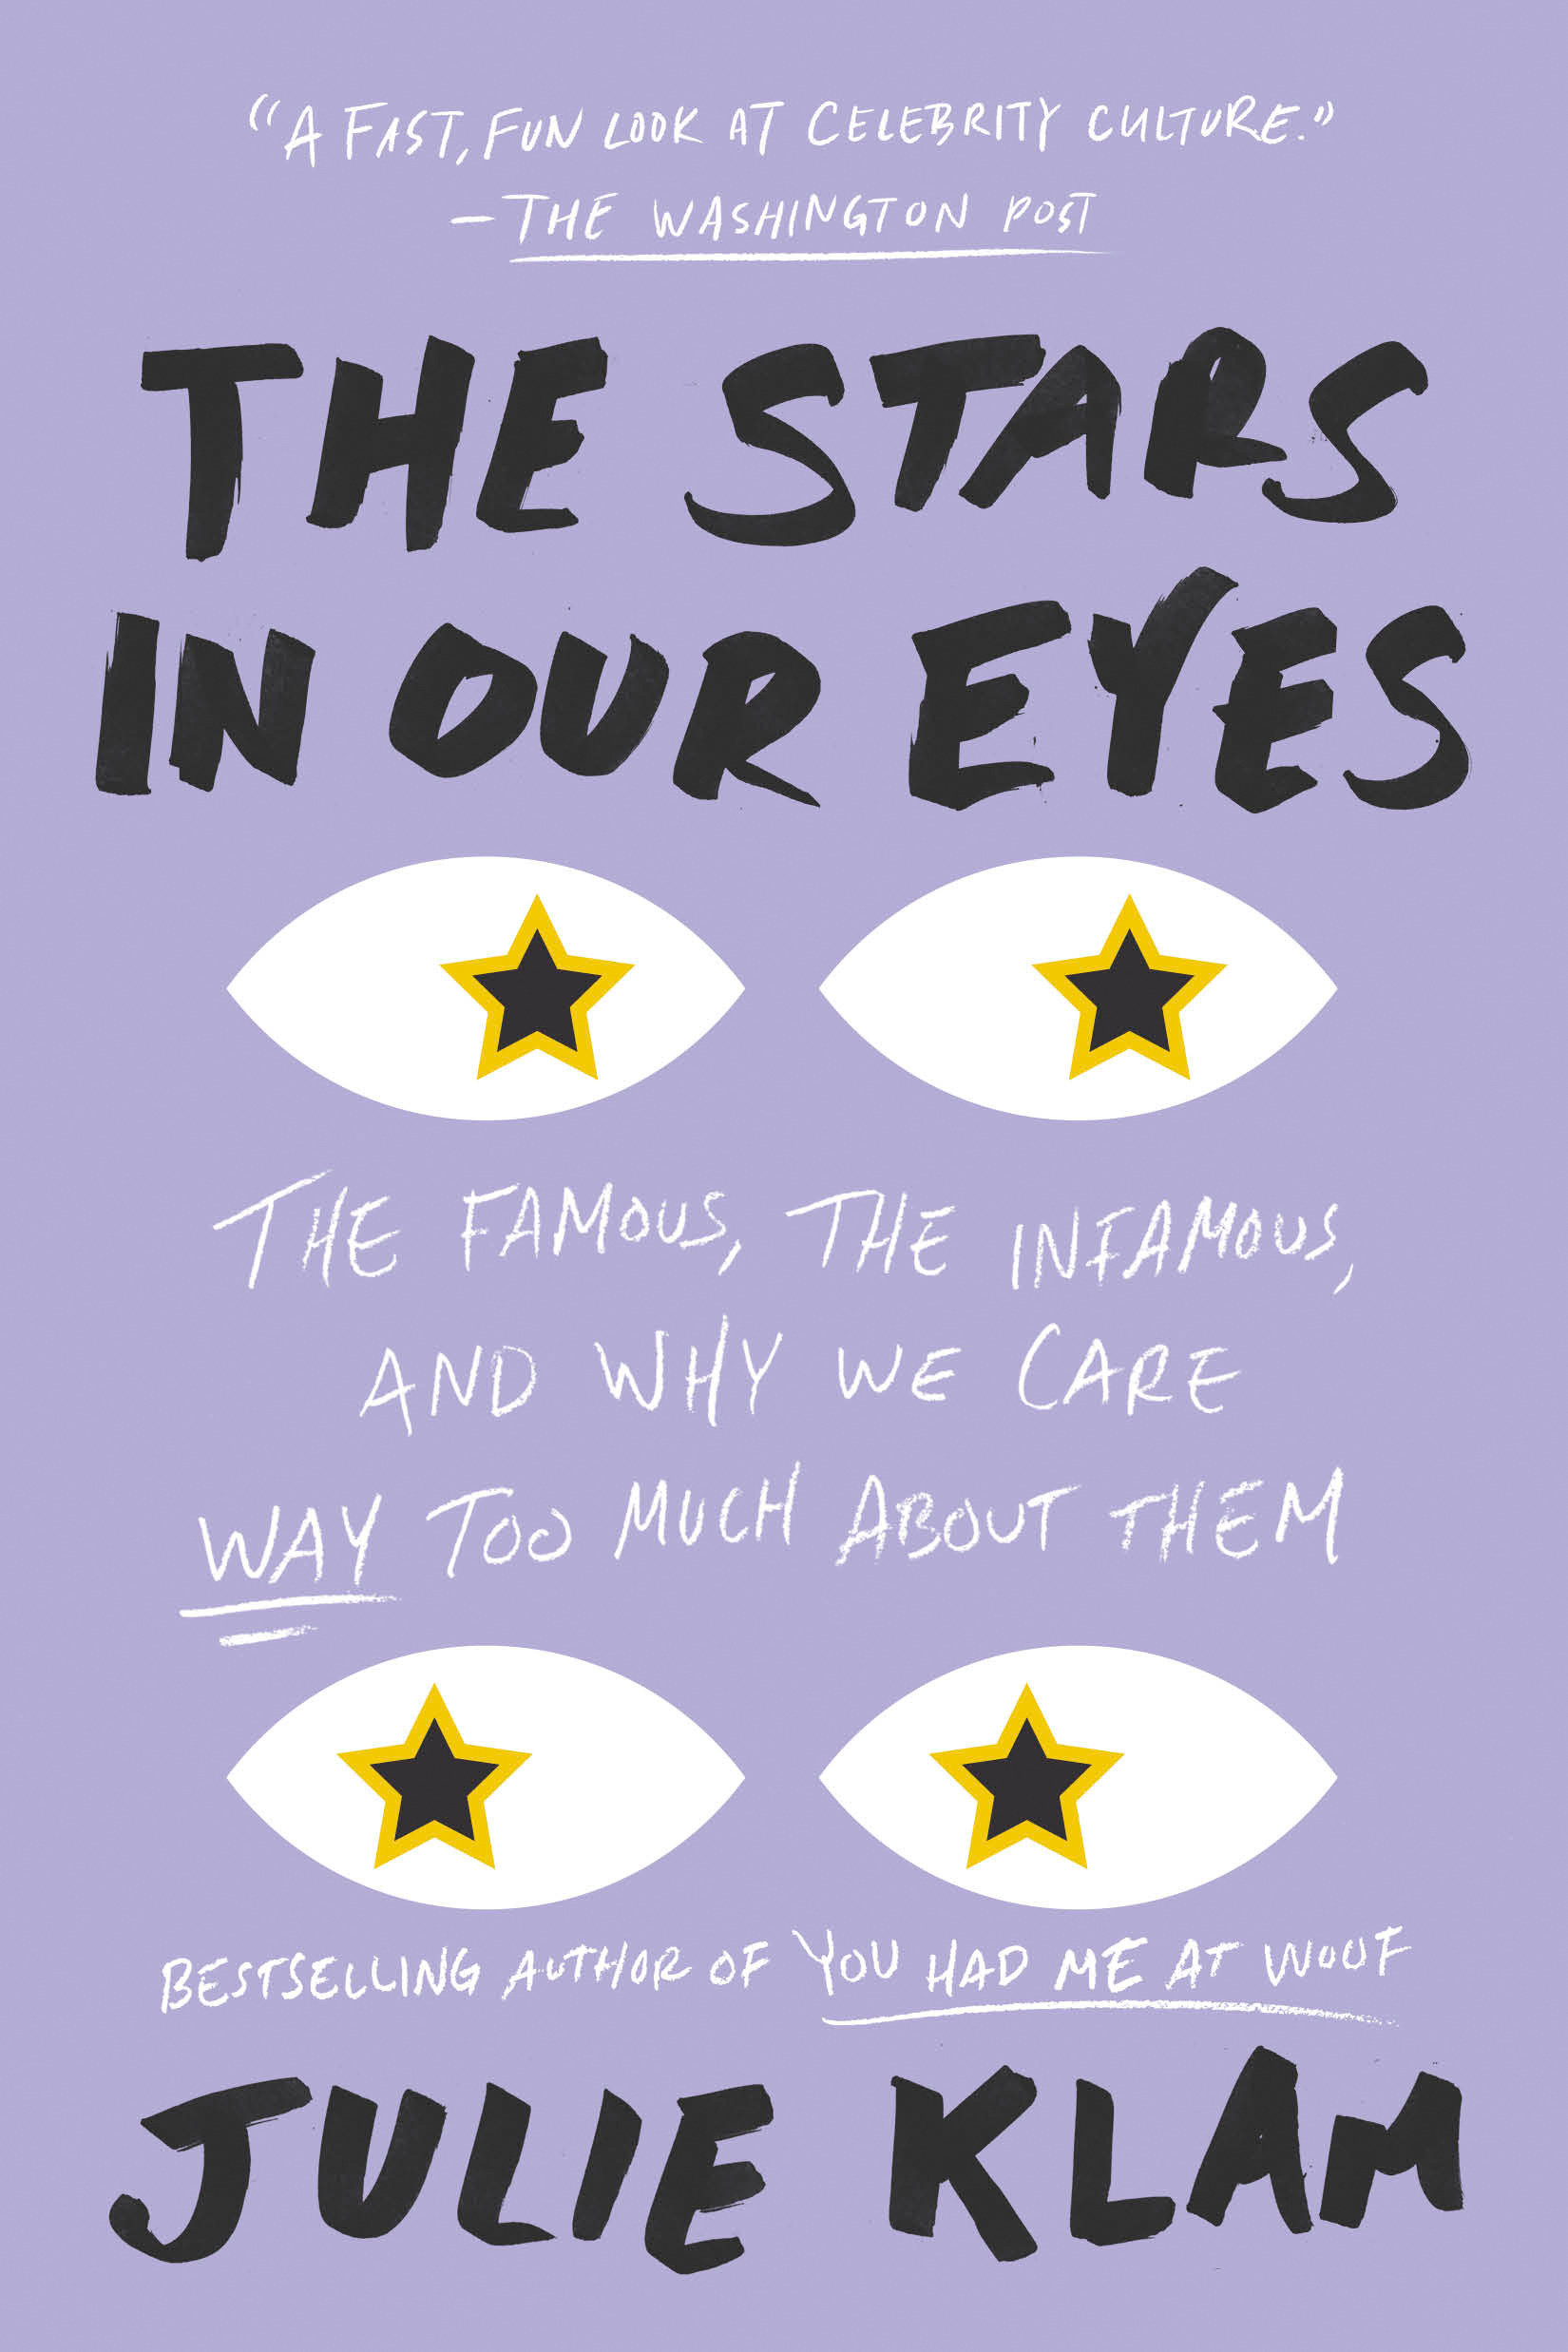 The stars in our eyes the famous, the infamous, and why we care way too much about them cover image